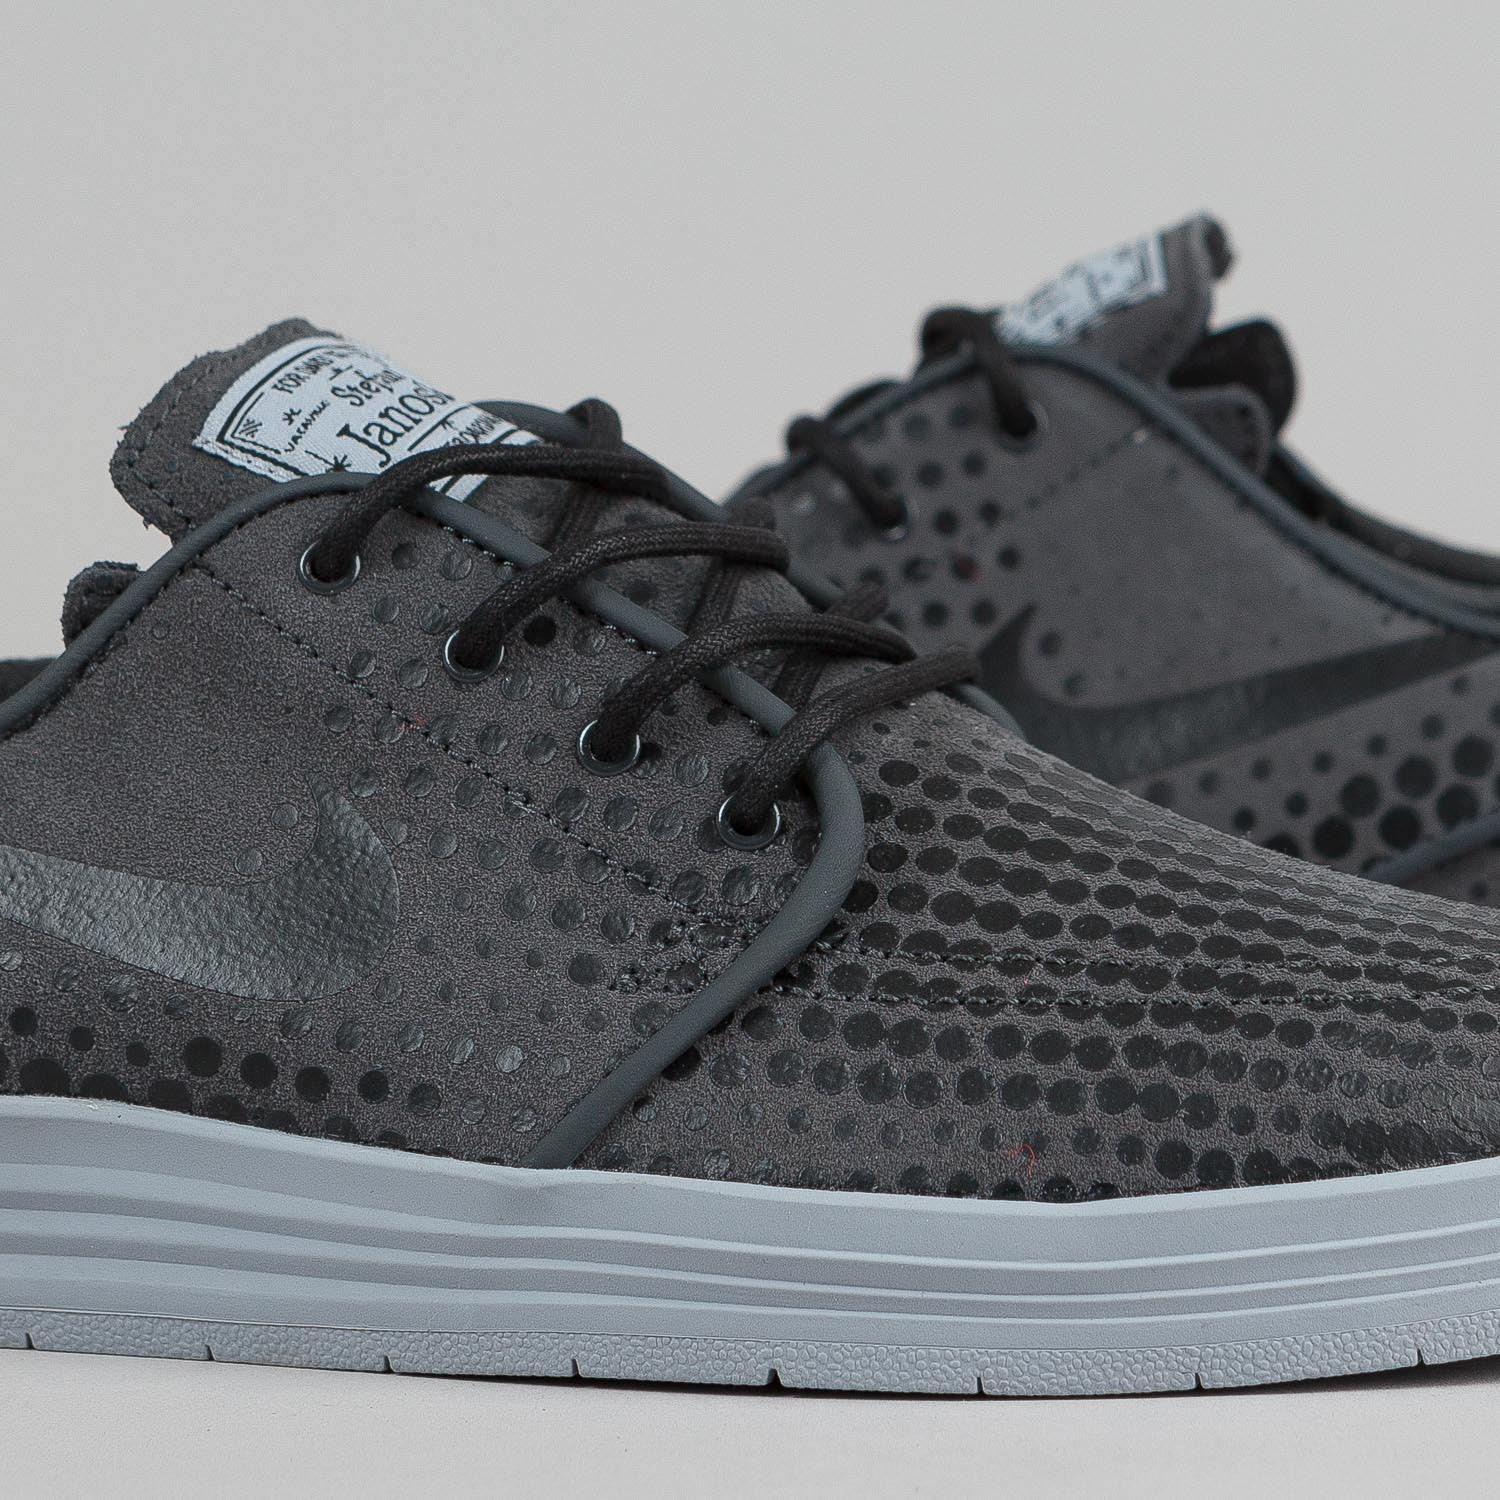 Nike SB Lunar Stefan Janoski Shoes Anthracite / Black - Wolf Grey